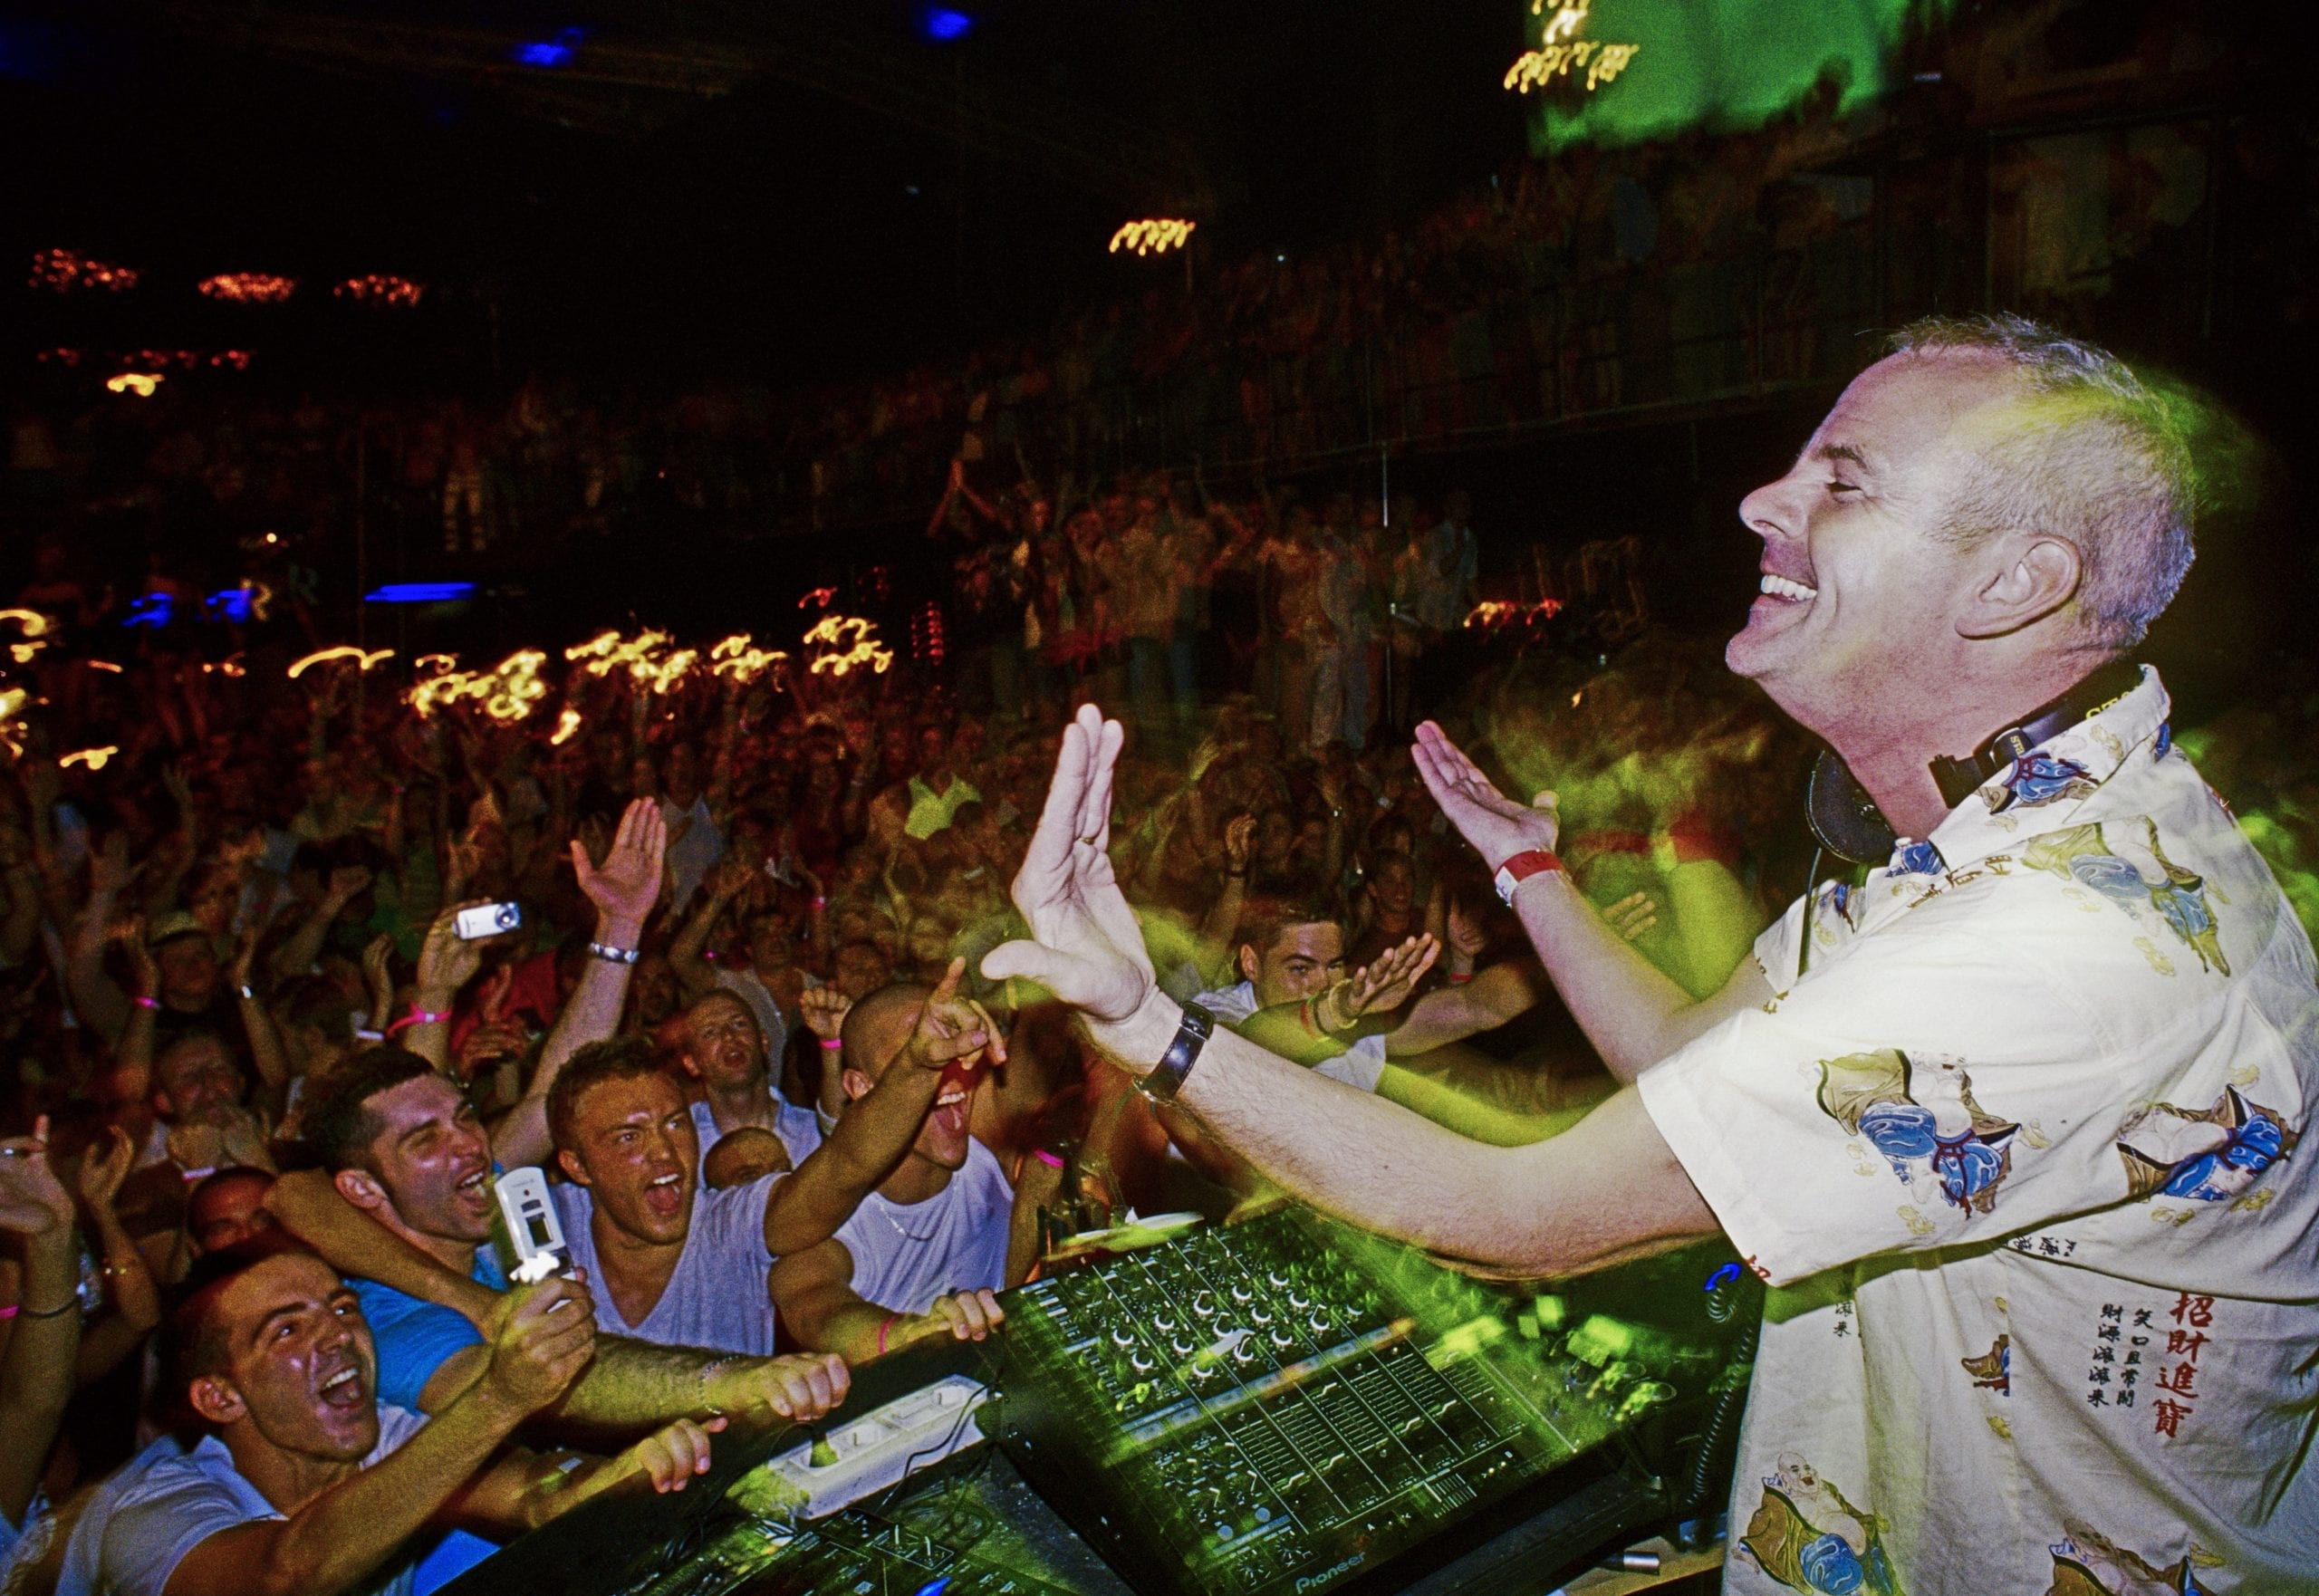 Norman Cook, aka Fatboy Slim, plays to a crowd of thousands at the world's biggest nightclub. Manumission, 2006 © Jocelyn Bain Hogg/VII